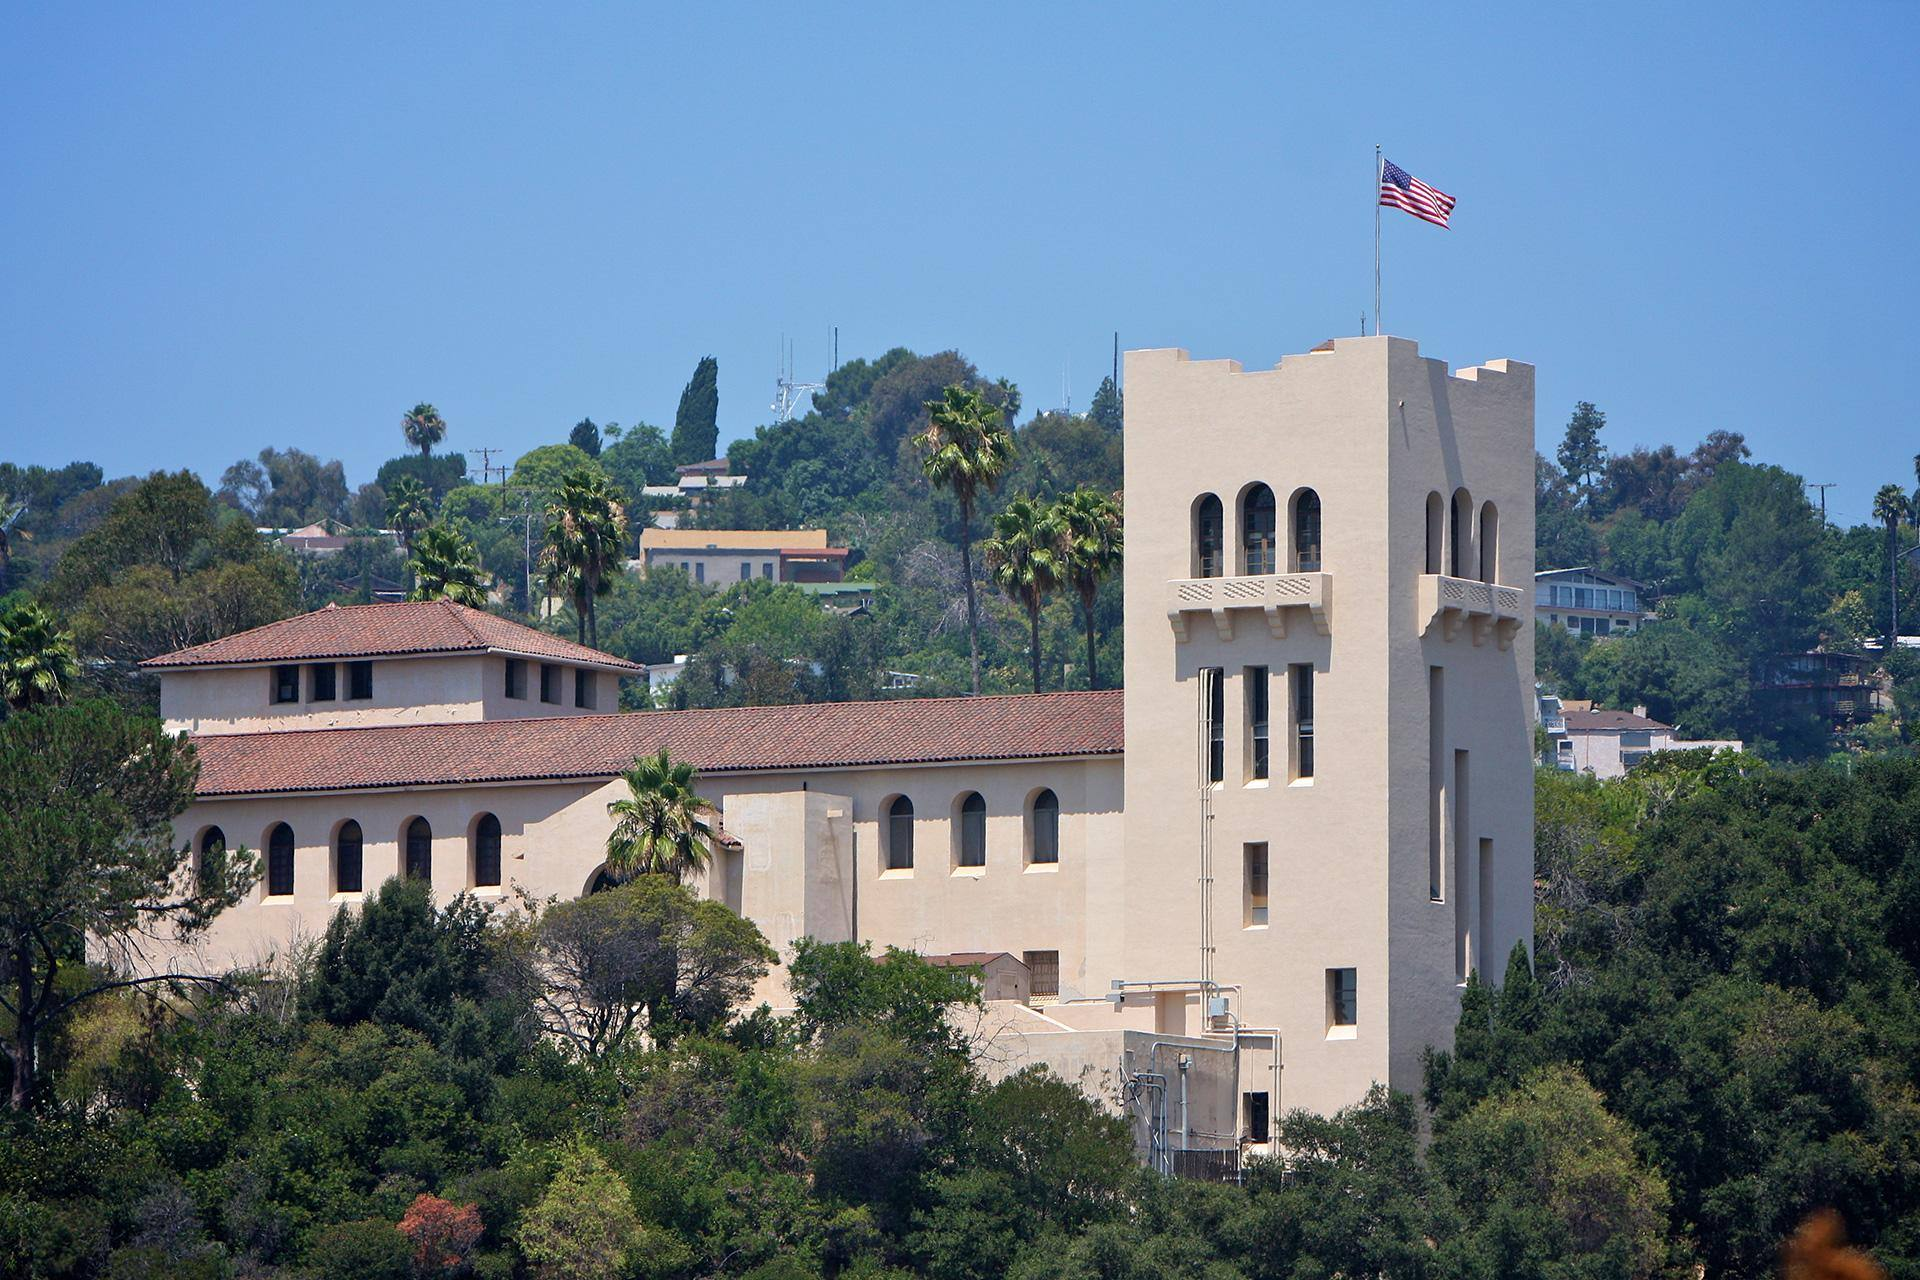 The Autry Historic Southwest Museum Mt. Washington Campus